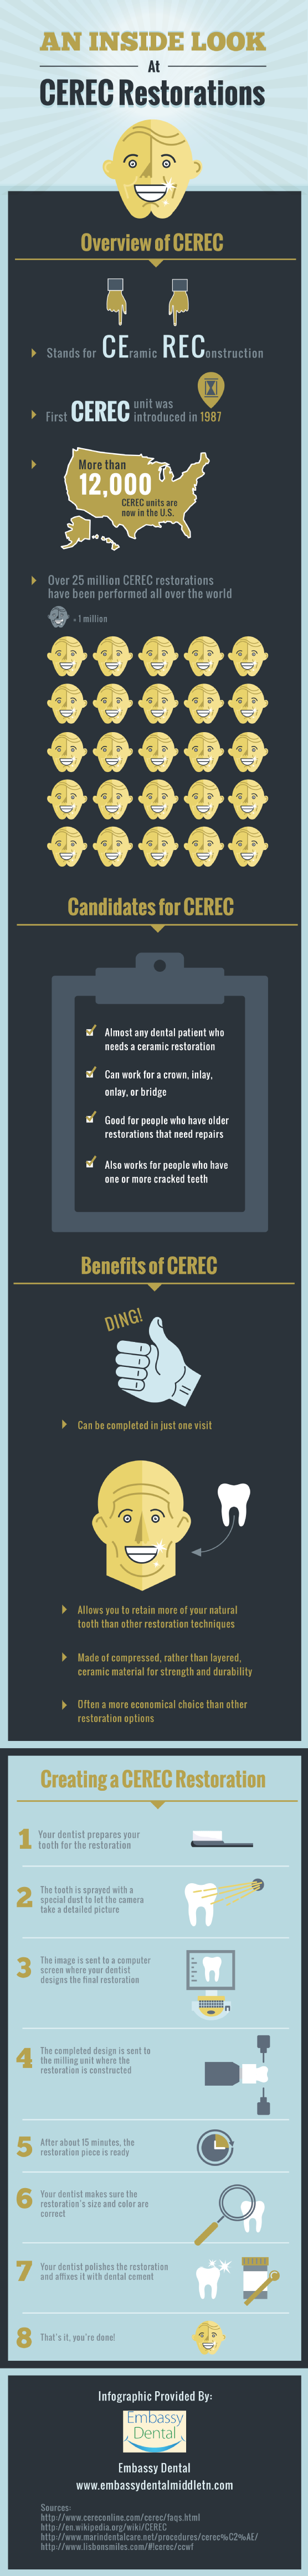 Statistics of CEREC Restorations